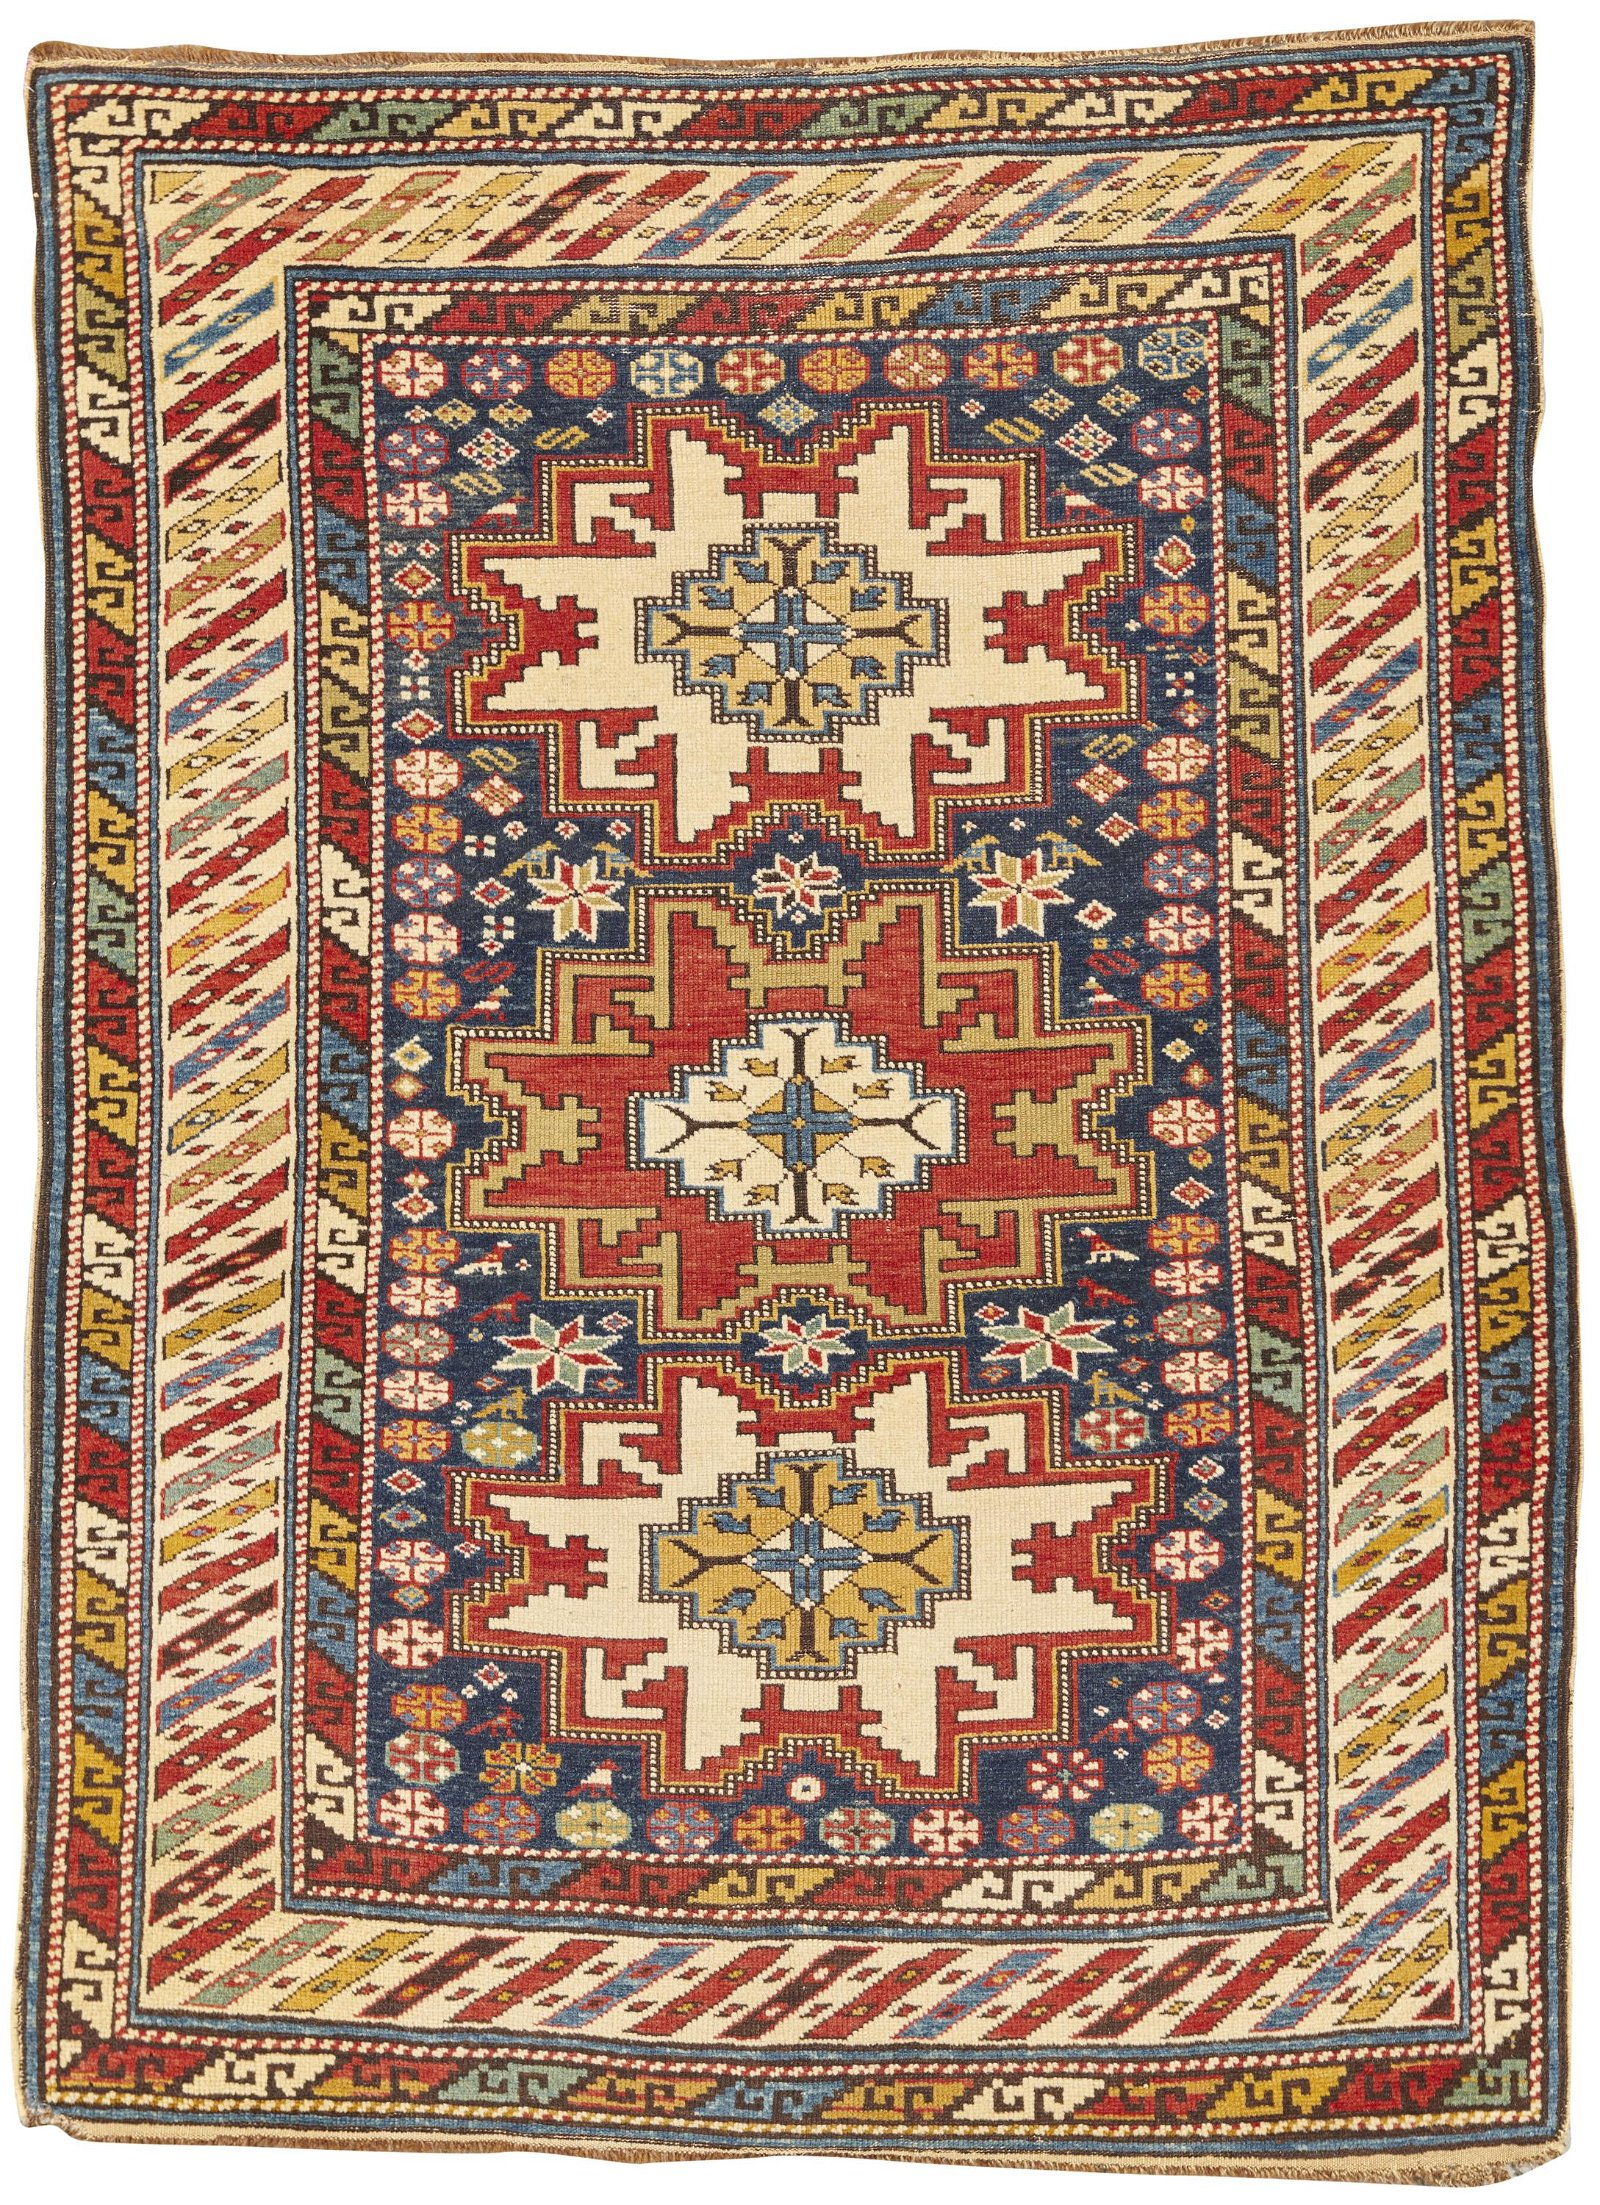 Lesghi Rug, Caucasus, ca. 1900; 4 ft. 5 in. x 3 ft. 5